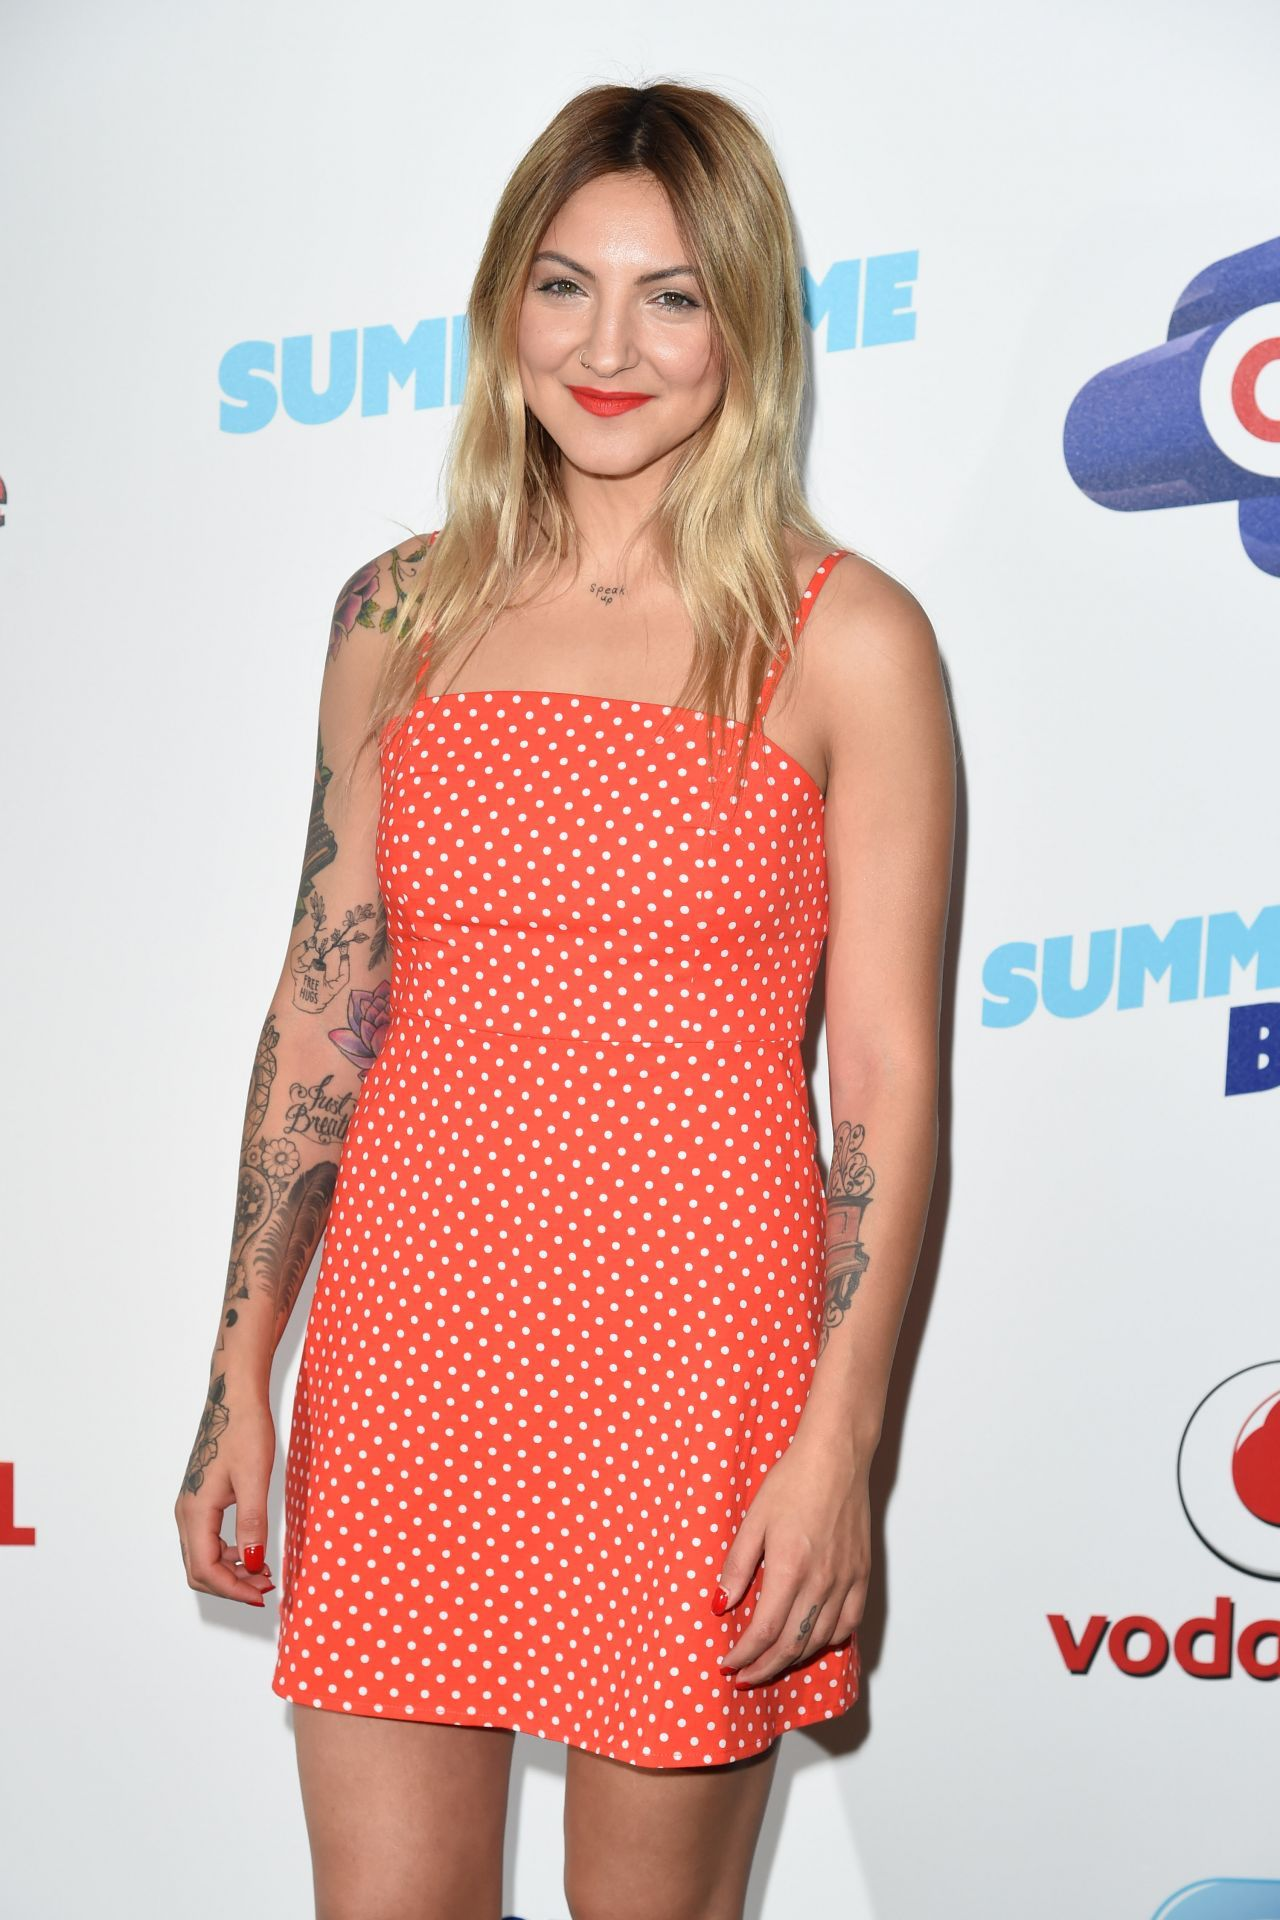 Celebrity Julia Michaels nudes (31 foto and video), Ass, Fappening, Twitter, swimsuit 2015